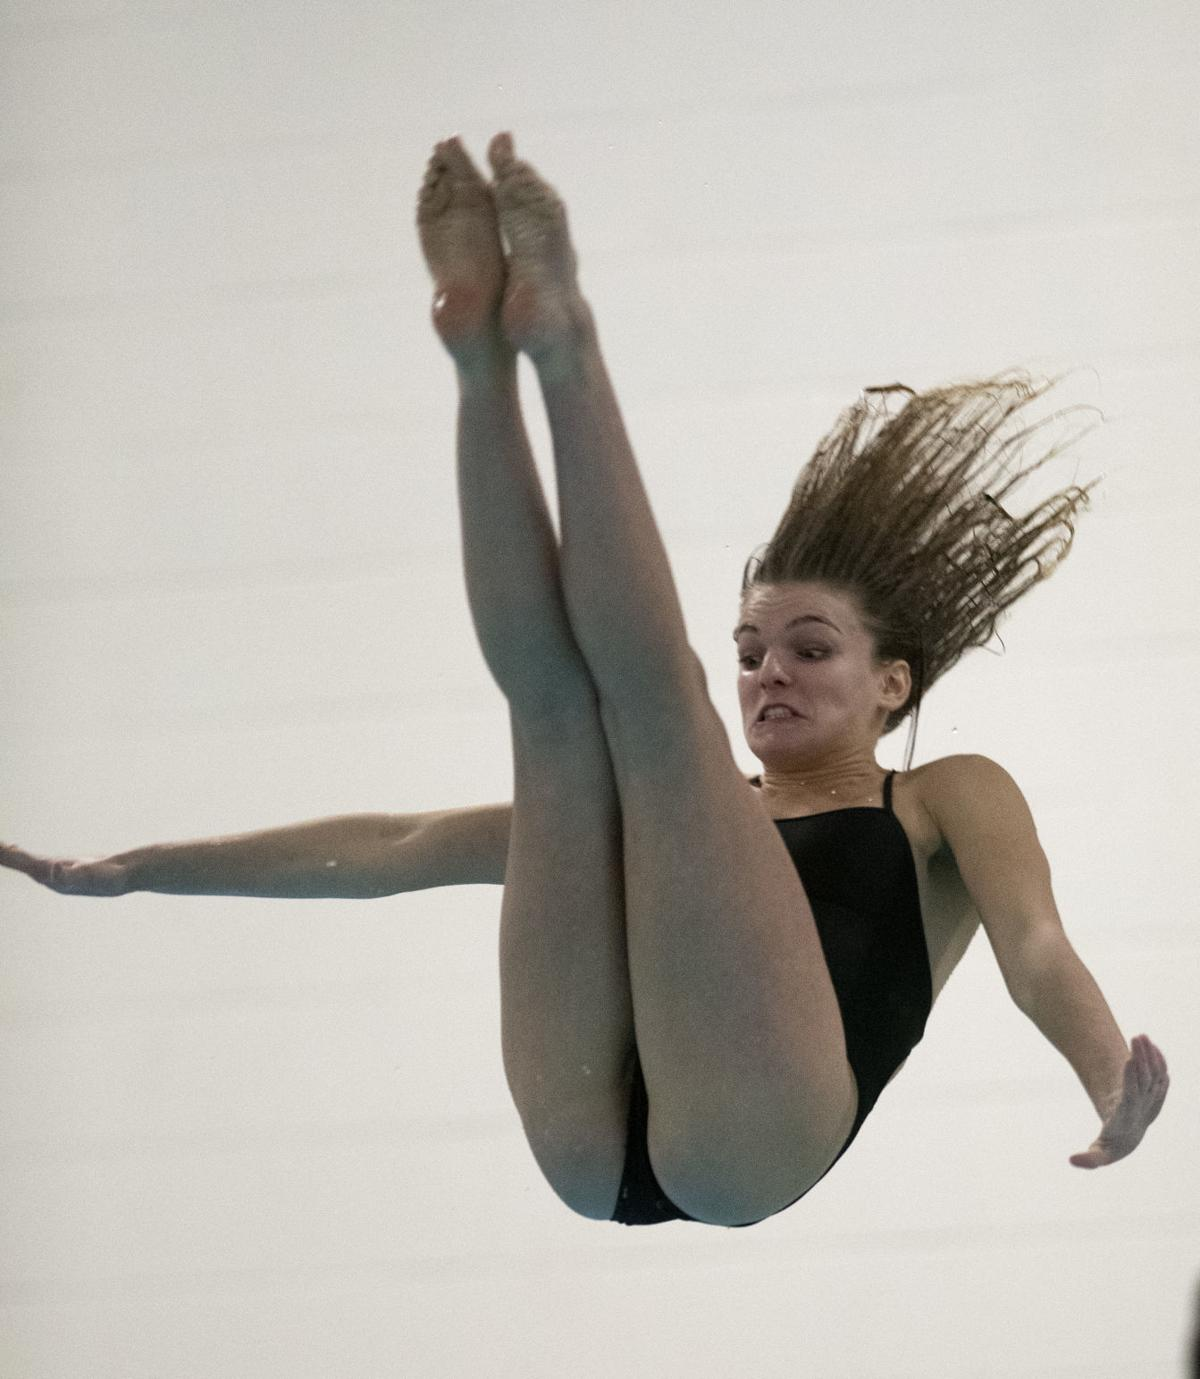 County Diving Championships